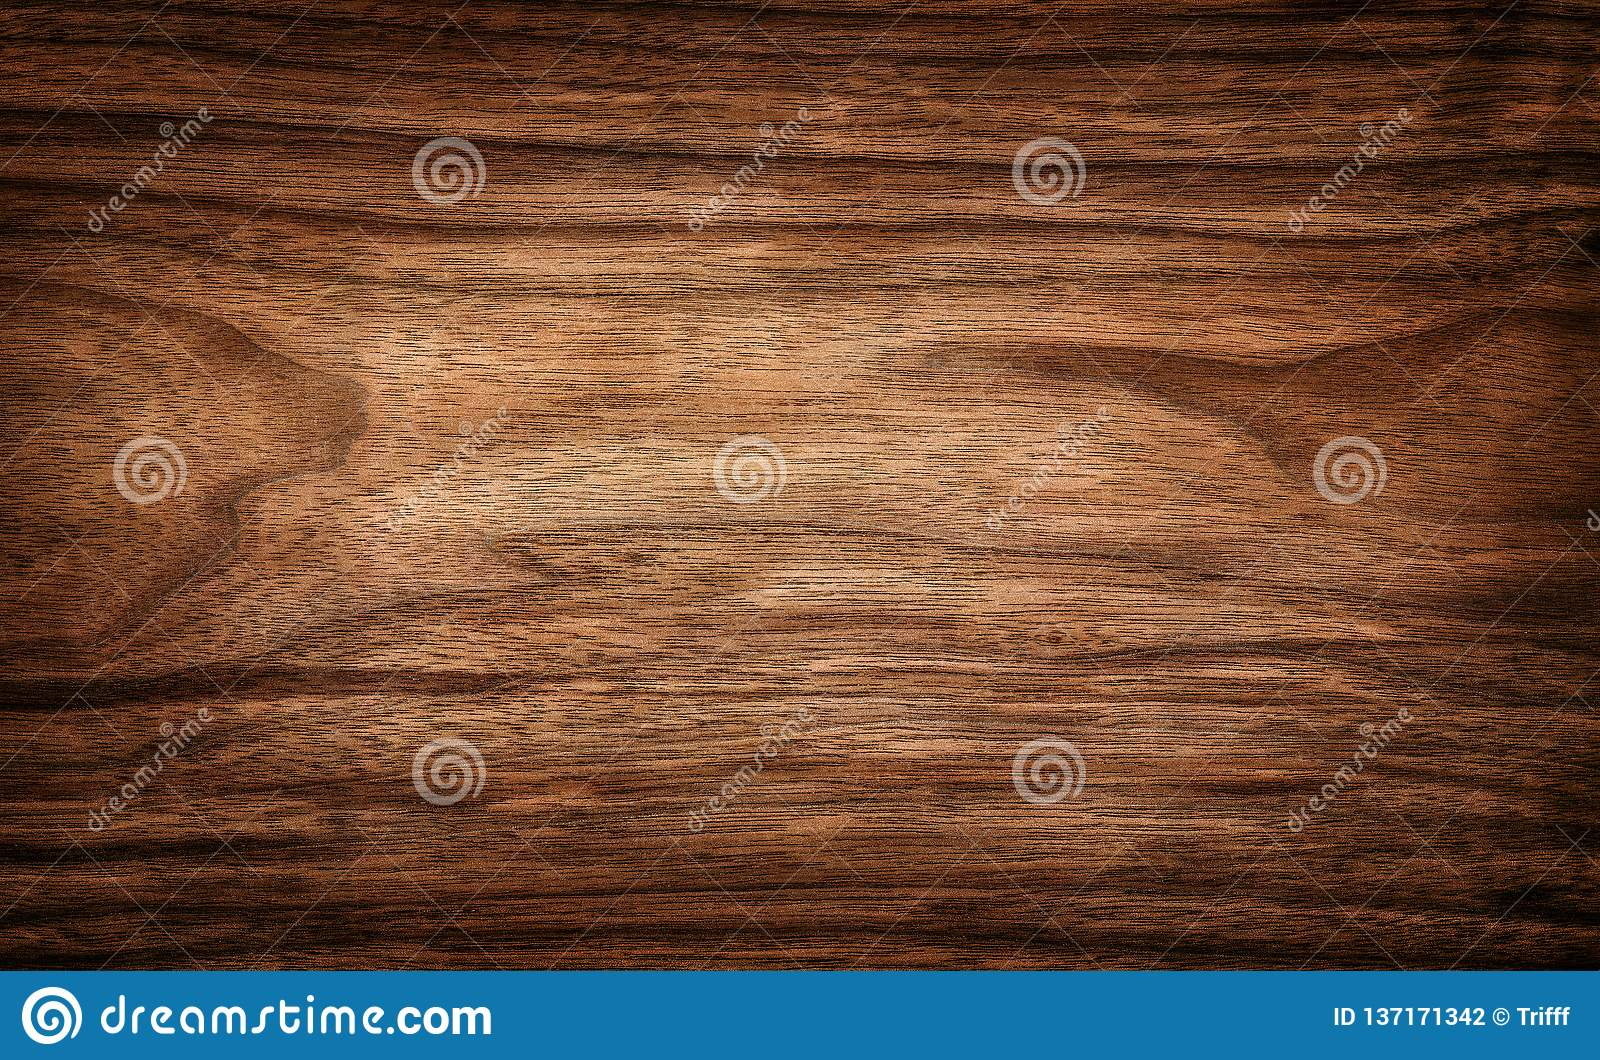 Dark wood texture background surface with natural pattern